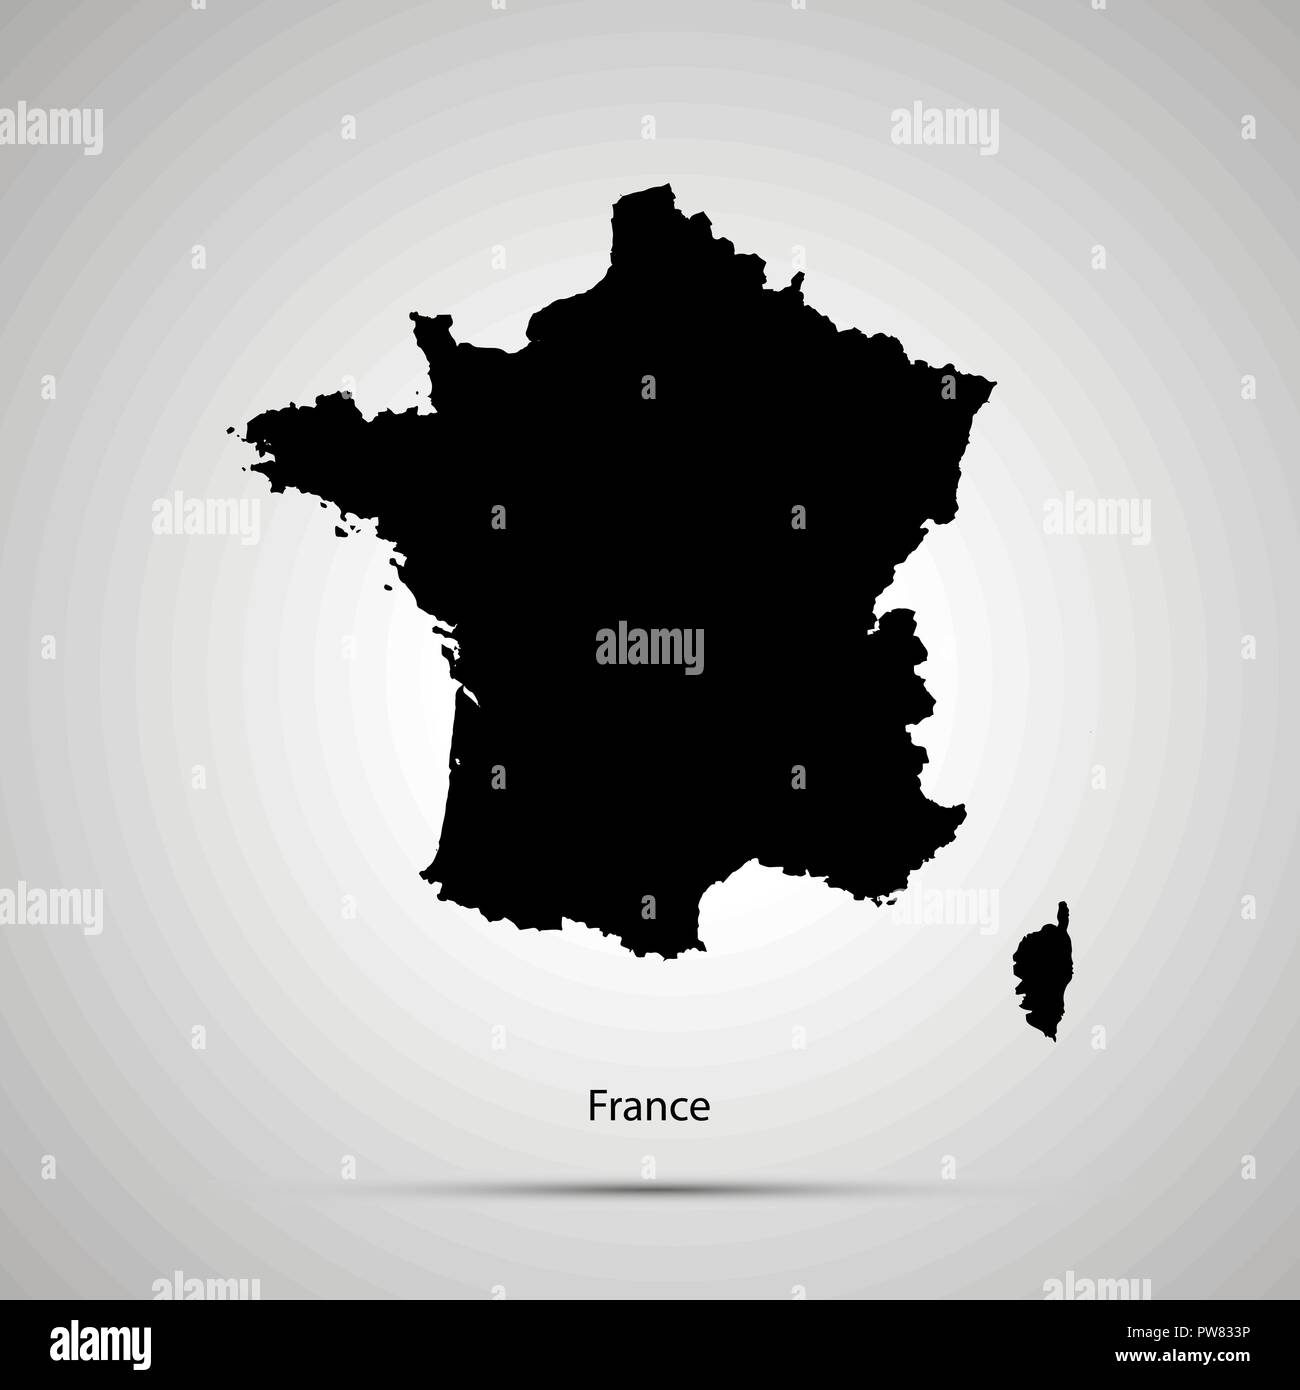 Country Map Of France.France Country Map Simple Black Silhouette Stock Vector Art